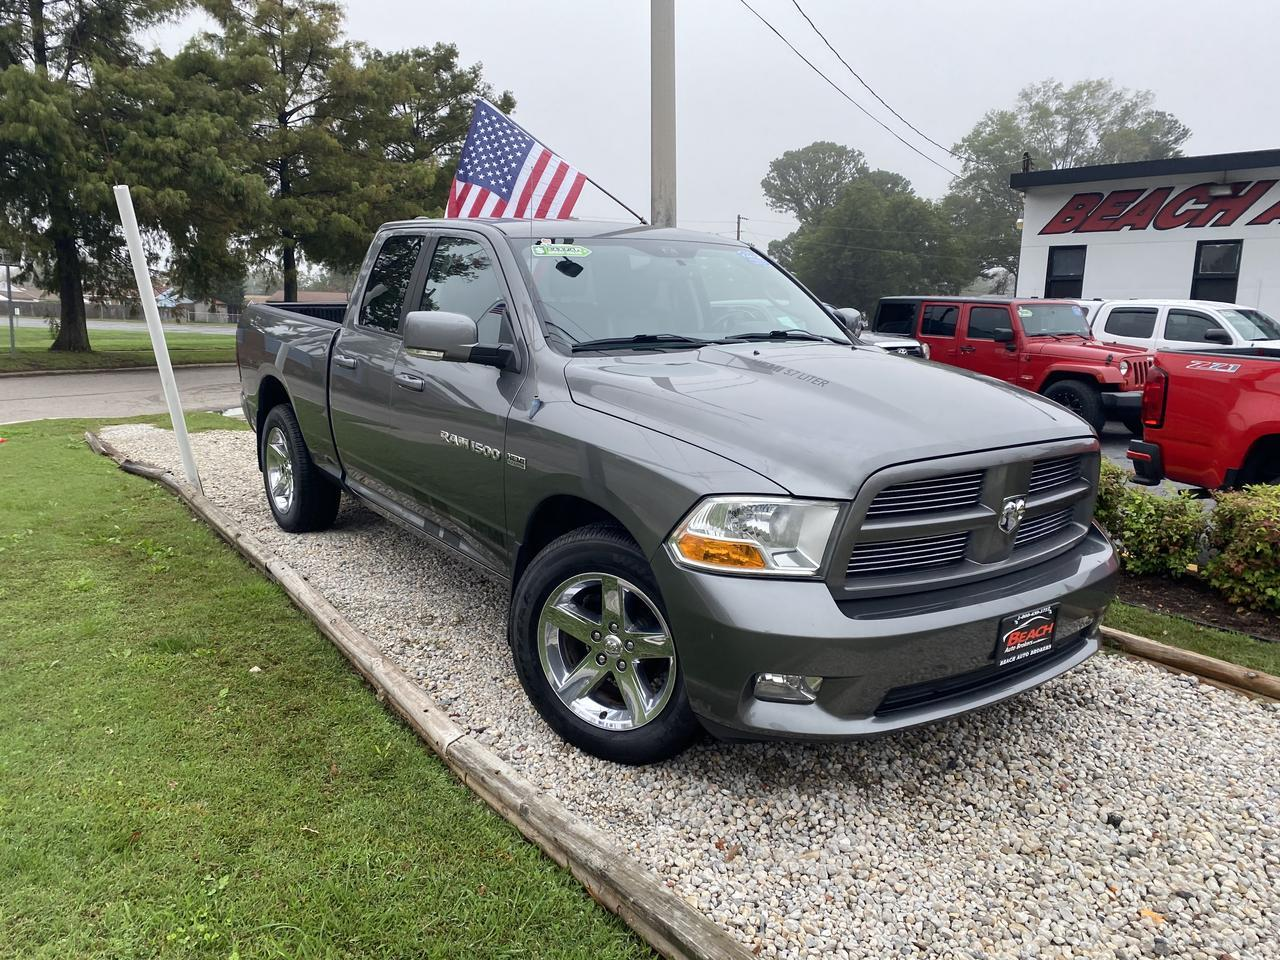 2012 DODGE RAM 1500 SPORT QUAD CAB 4X4, WARRANTY, AUX/USB PORT, SATELLITE RADIO, CLEAN CARFAX! Norfolk VA